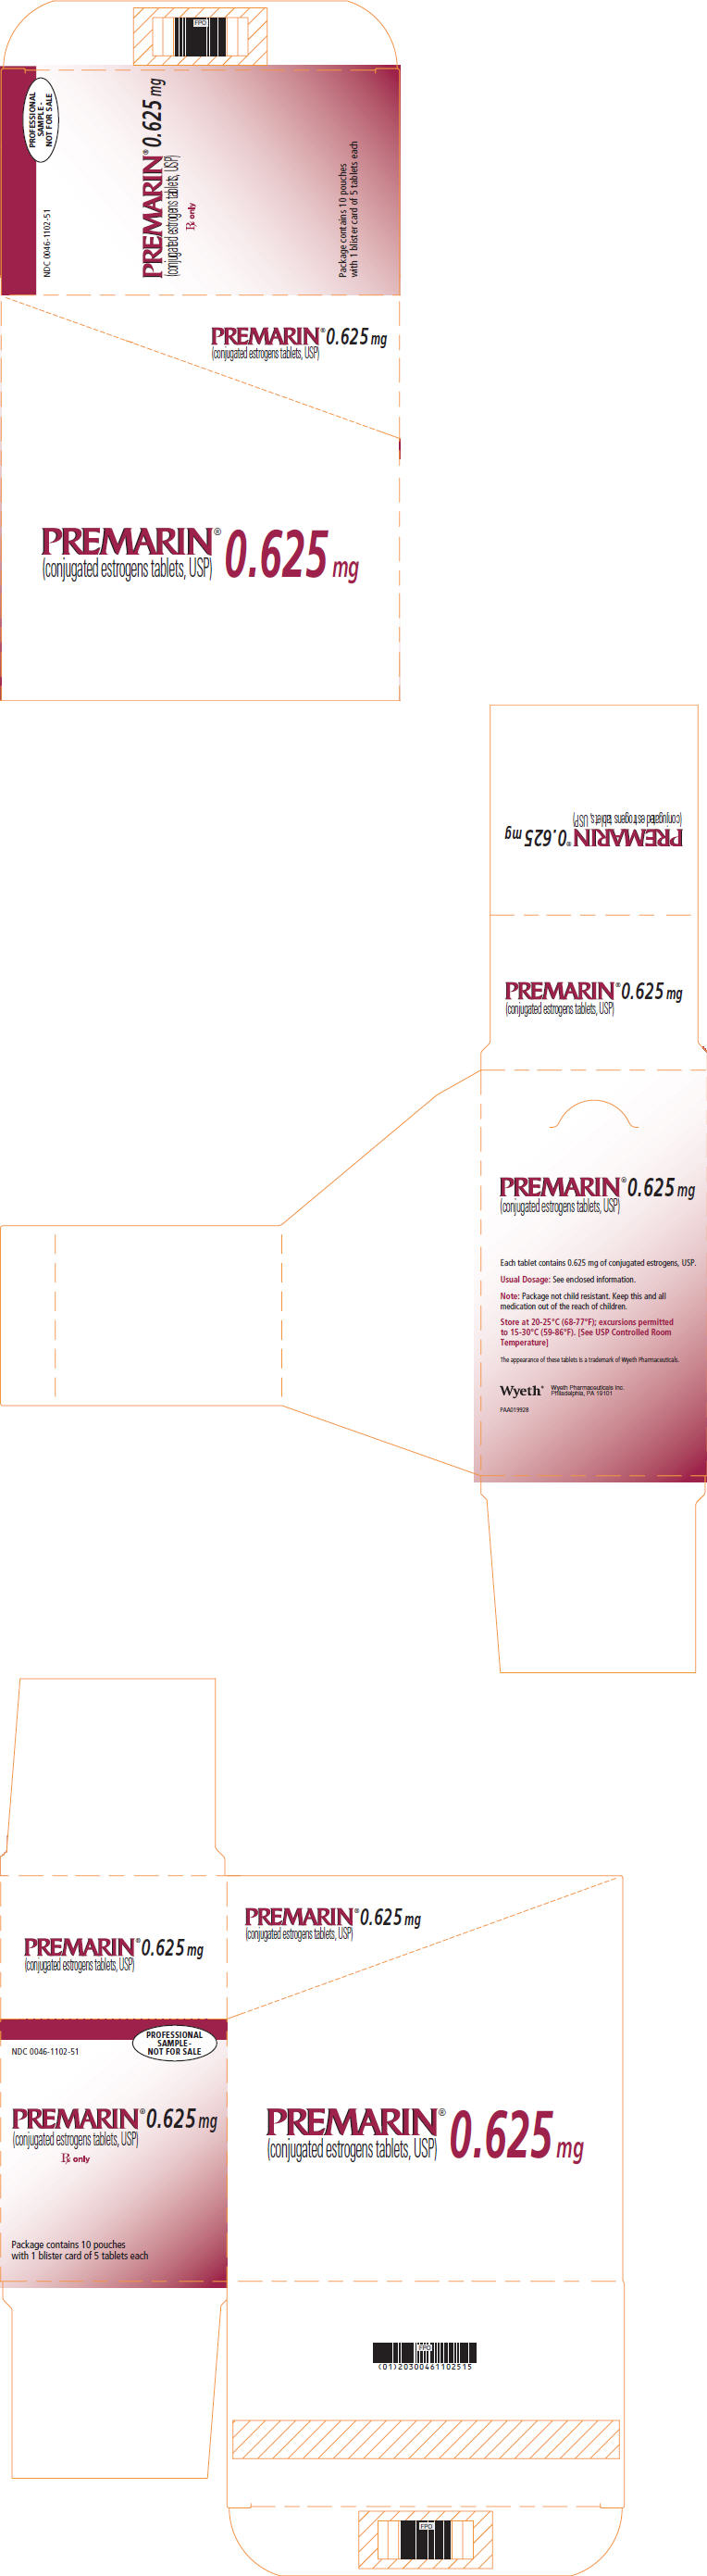 PRINCIPAL DISPLAY PANEL - 0.625 MG -CARTON